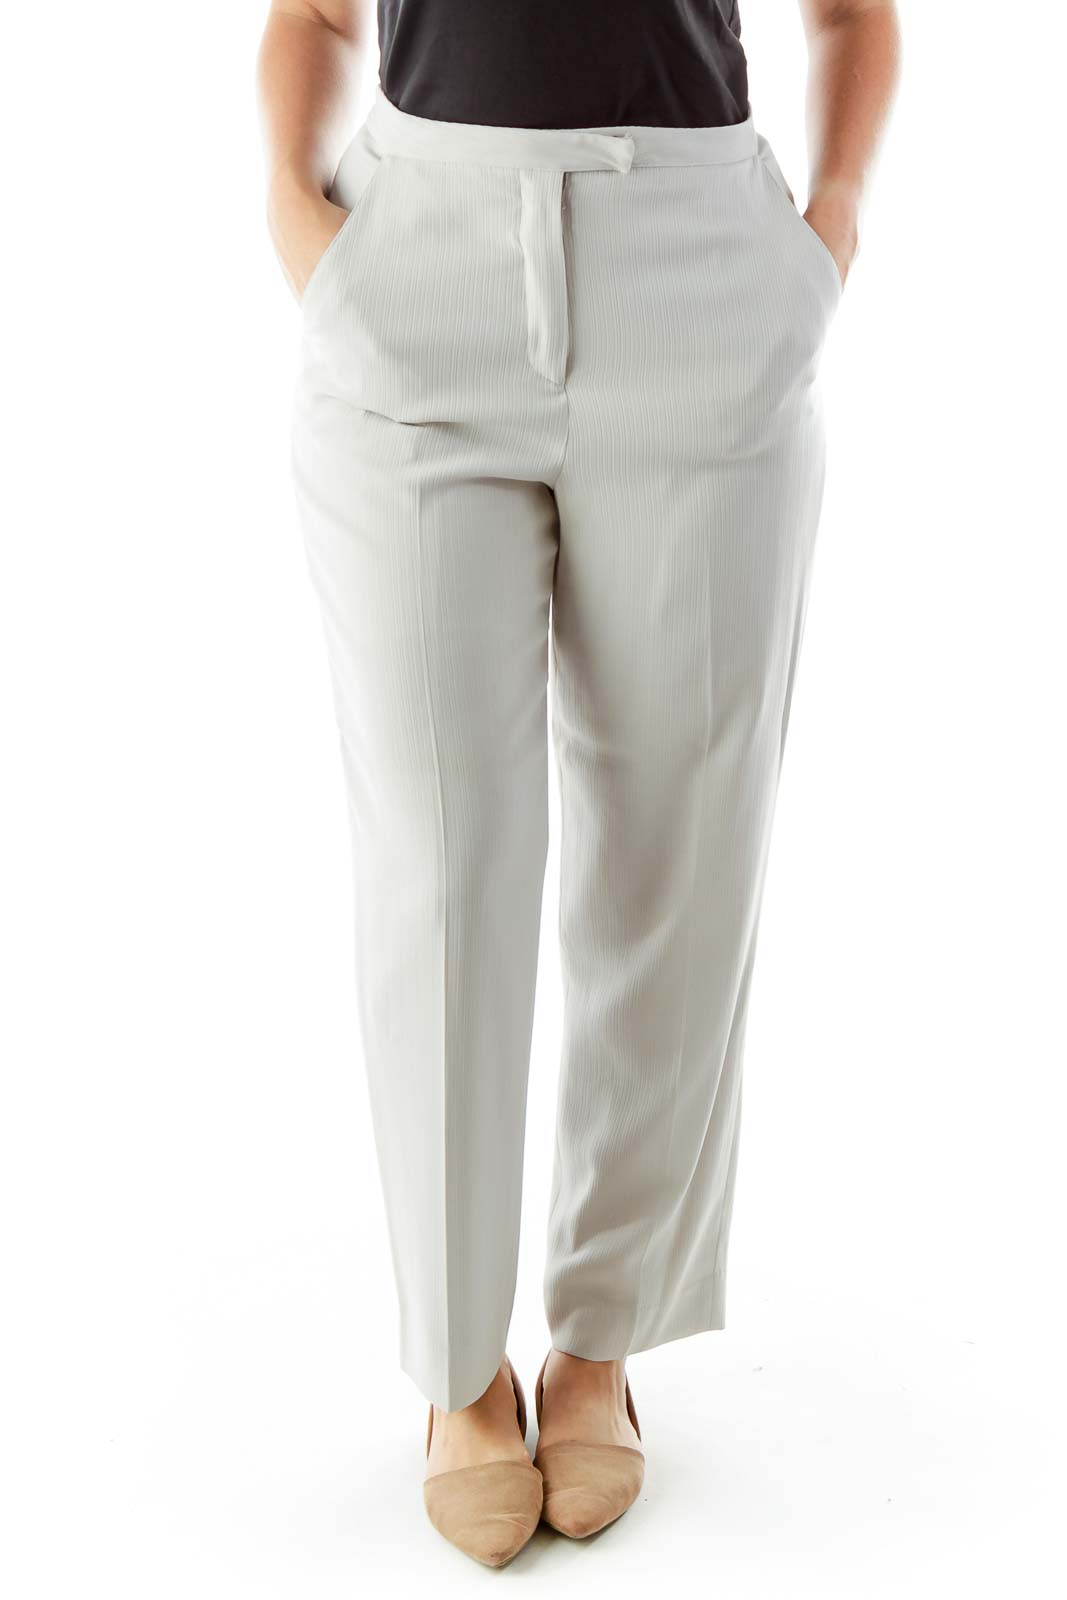 Gray Embossed Stripes Pants Suit Front